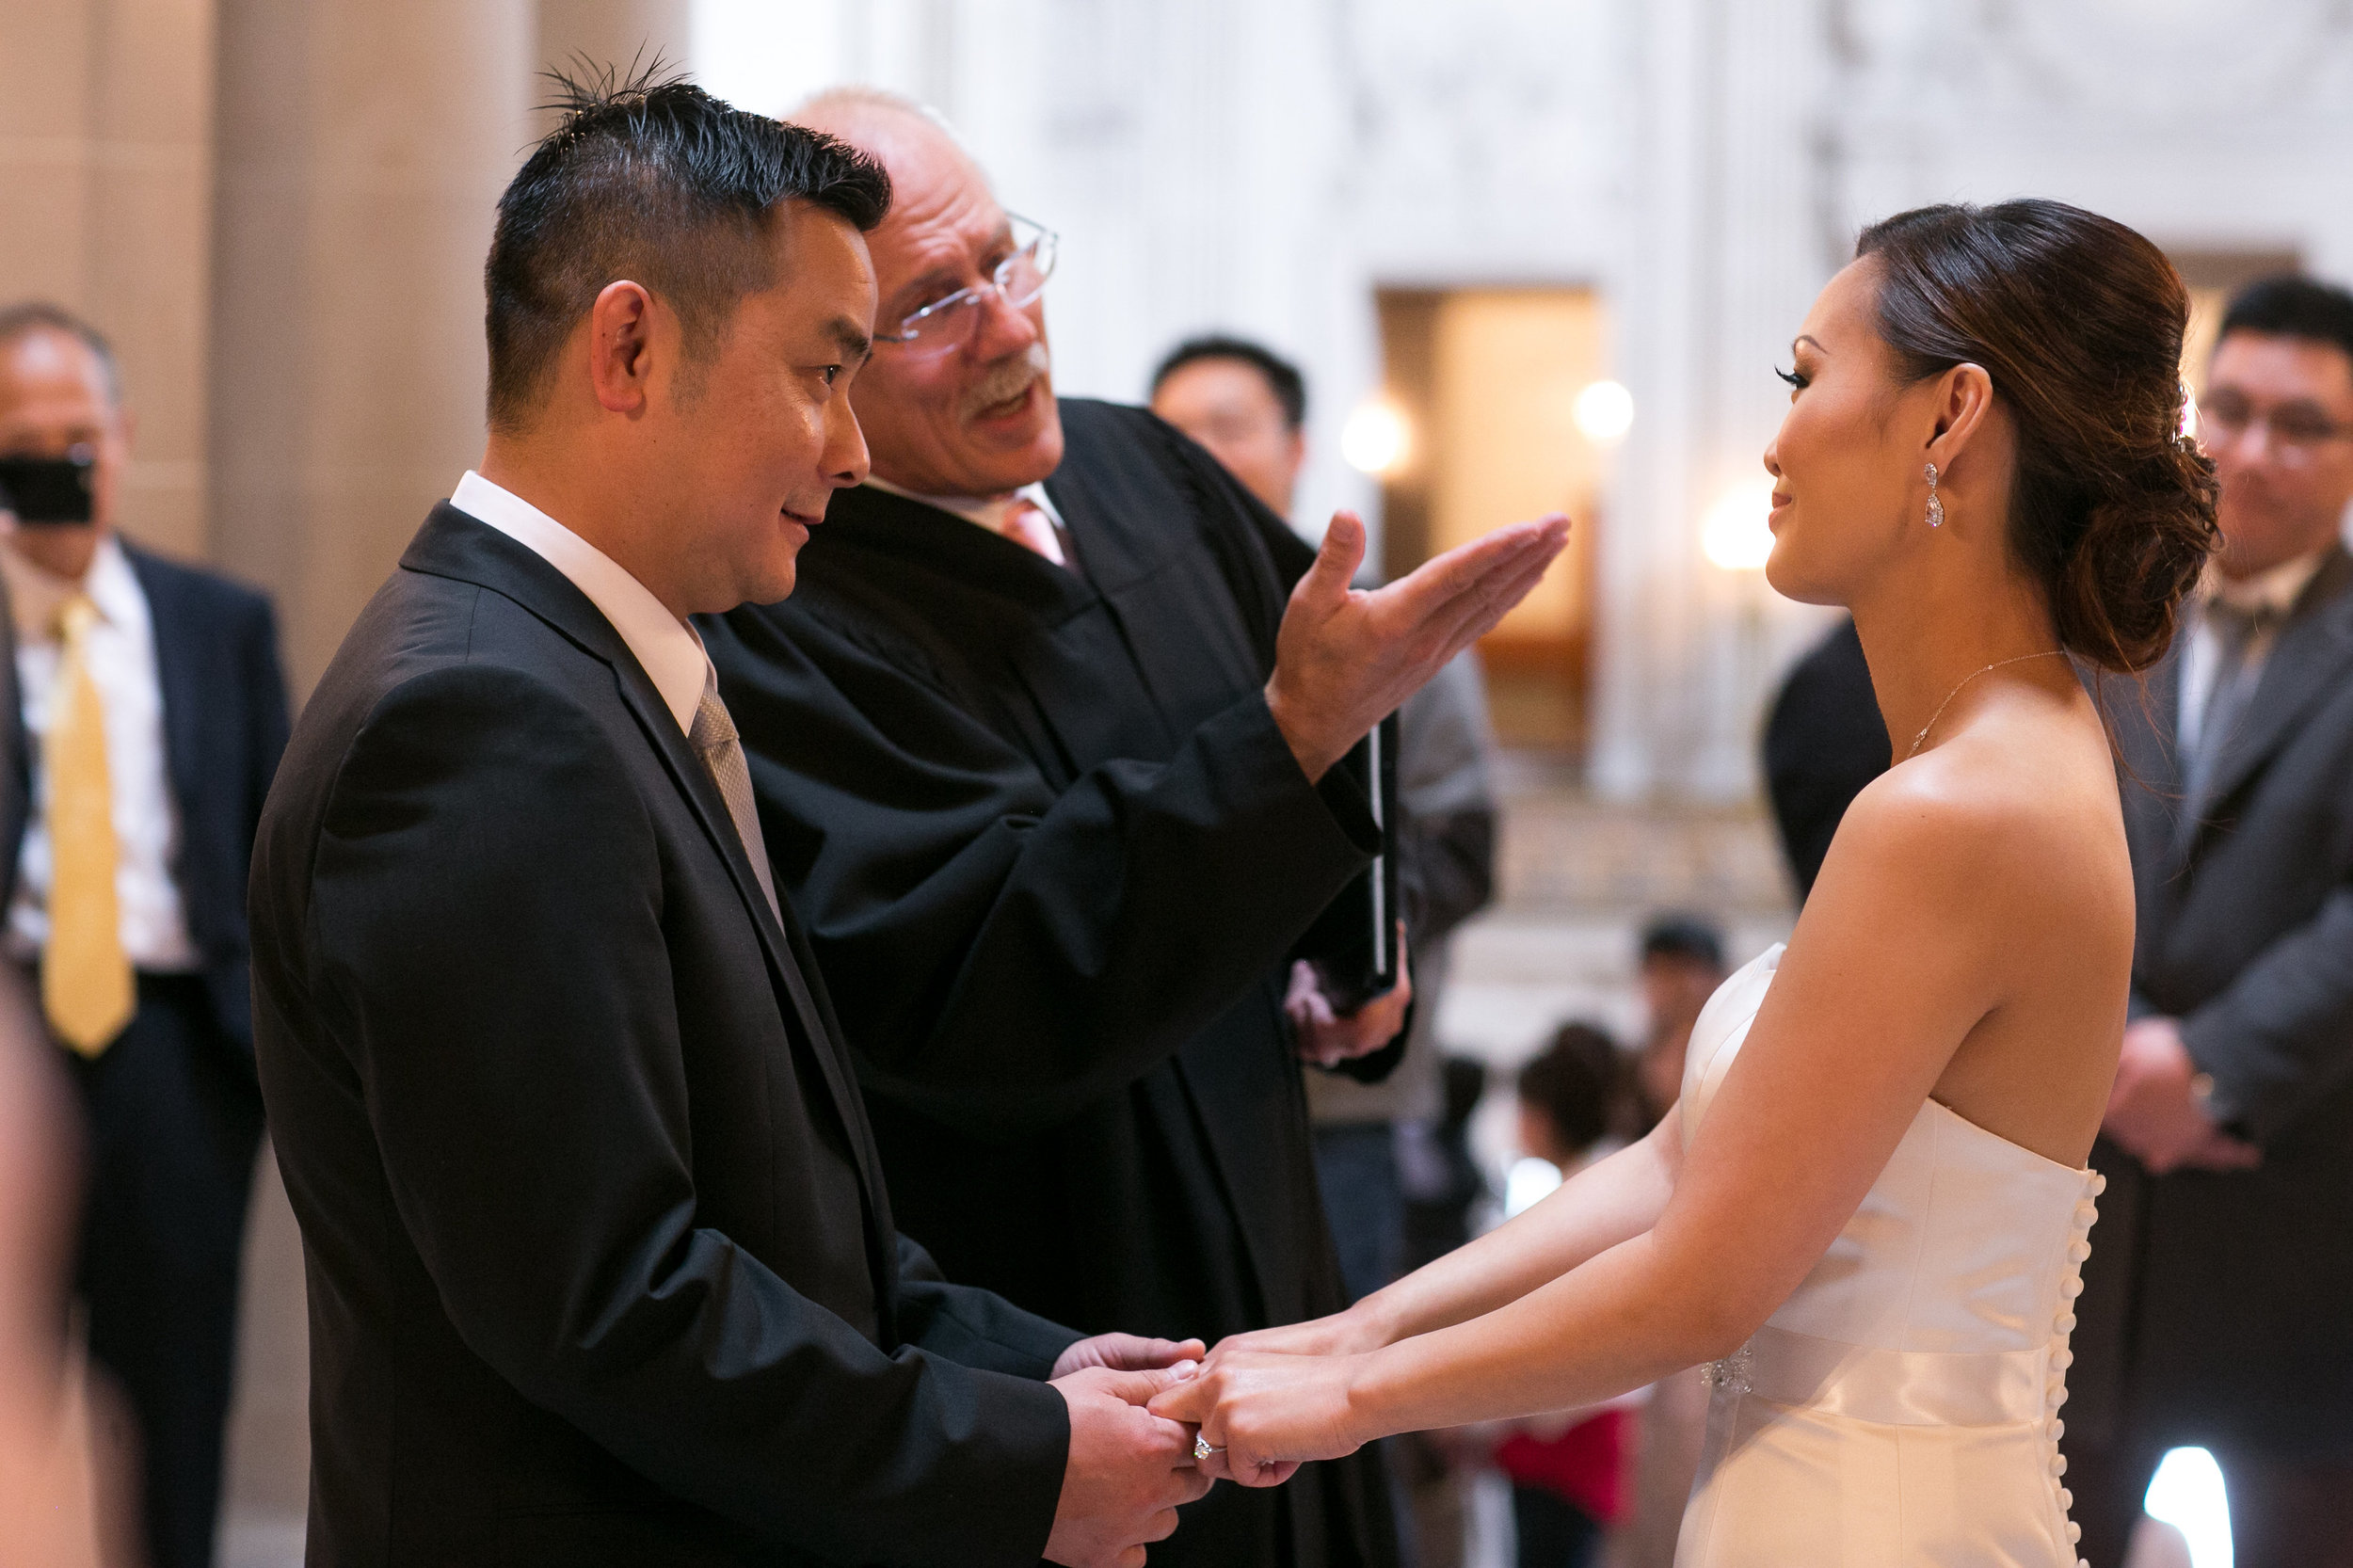 san francisco city hall wedding 11.jpg